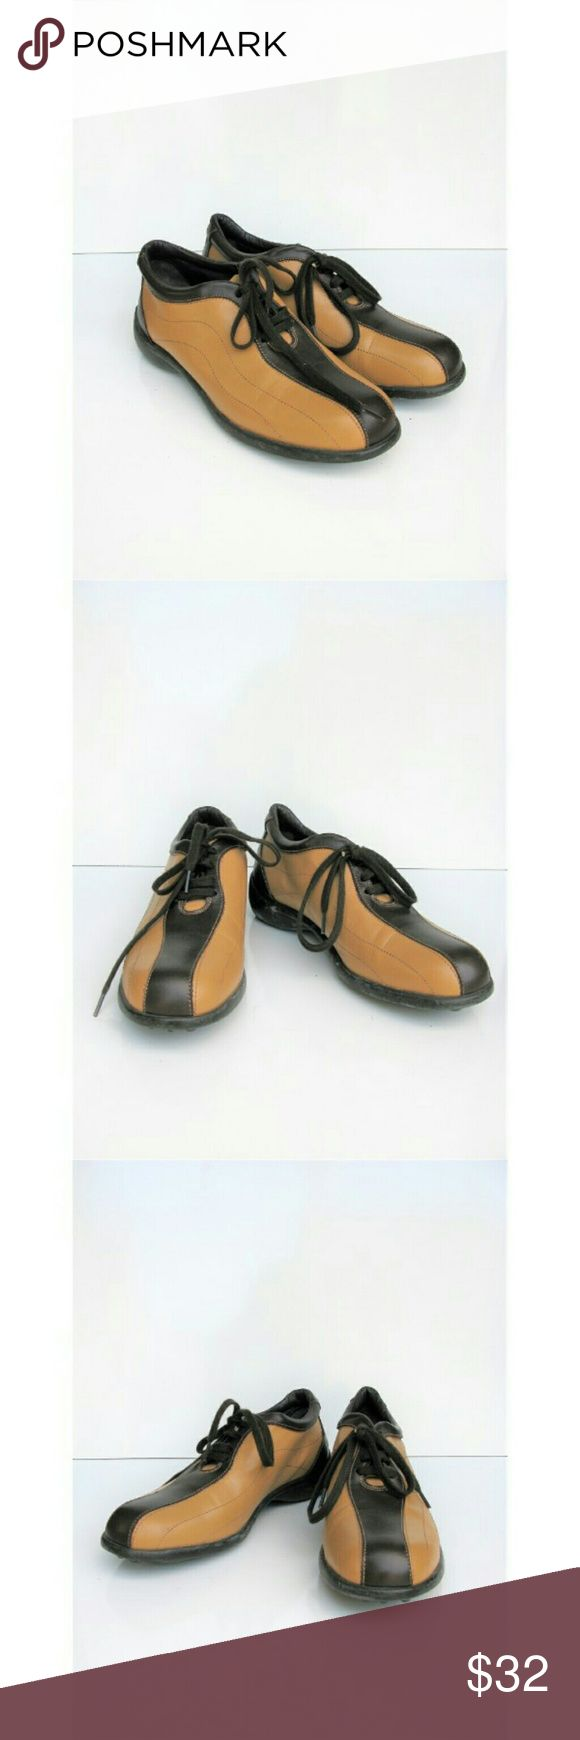 Jaime Mascaro Lace-up Leather Bowling Shoe Oxfords Two Tone Brown & Tan Leather, Lace-up, Cushioned Heel, Leather Sole -- Excellent Rarely Worn Condition, Light Scuffing to Rubber Heel, Otherwise Mint Condition ---- Toe to Heel 9 -- Heel 1 -- Leather Jaime Mascaro Shoes Flats & Loafers